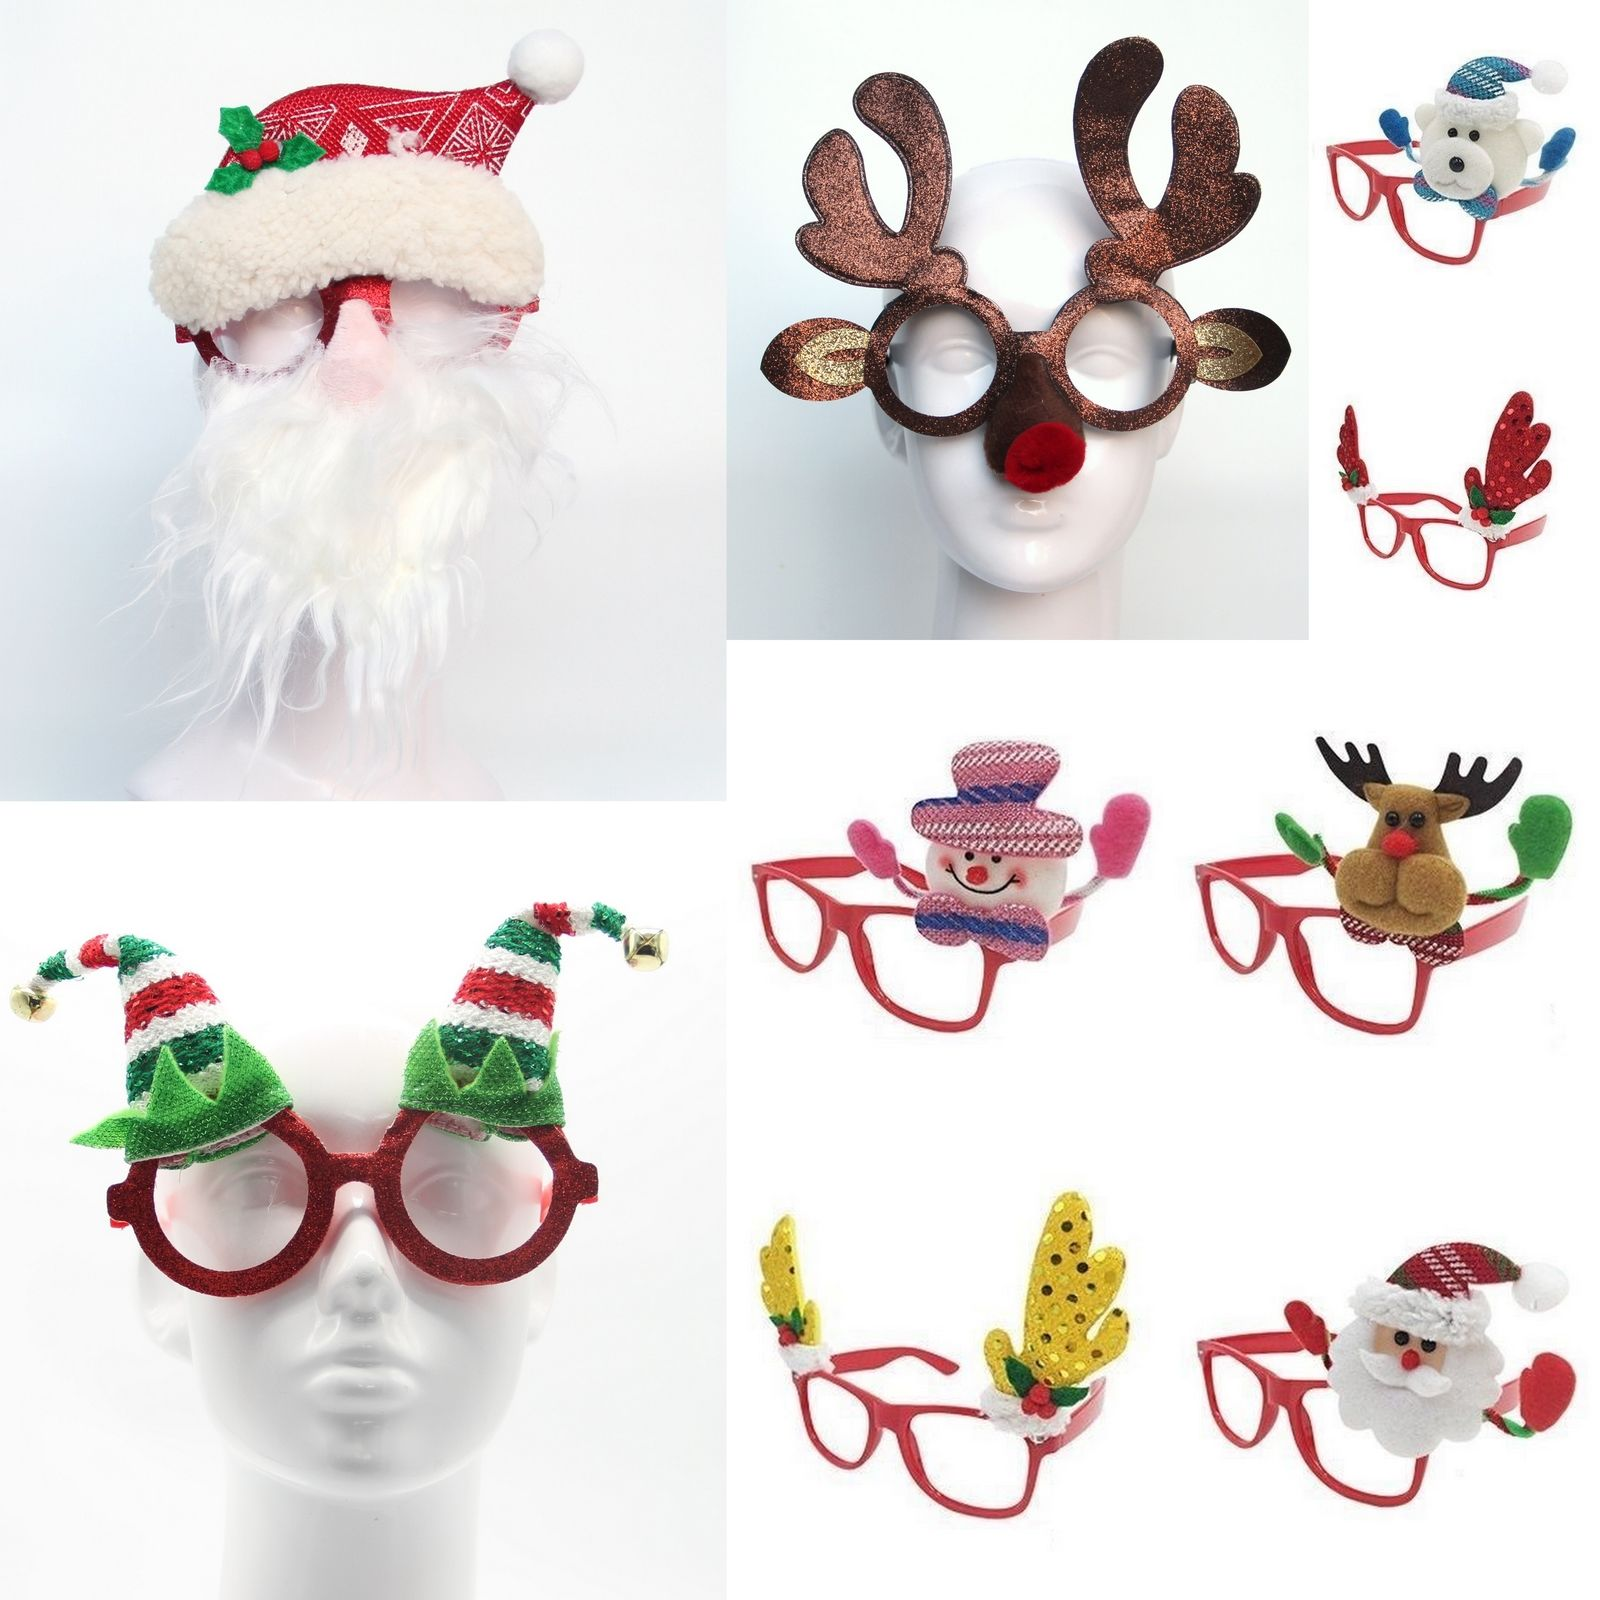 Happy New Year Christmas Glasses Xmas Party Accessories Photo Booth Props Costume Fancy Dress 1757